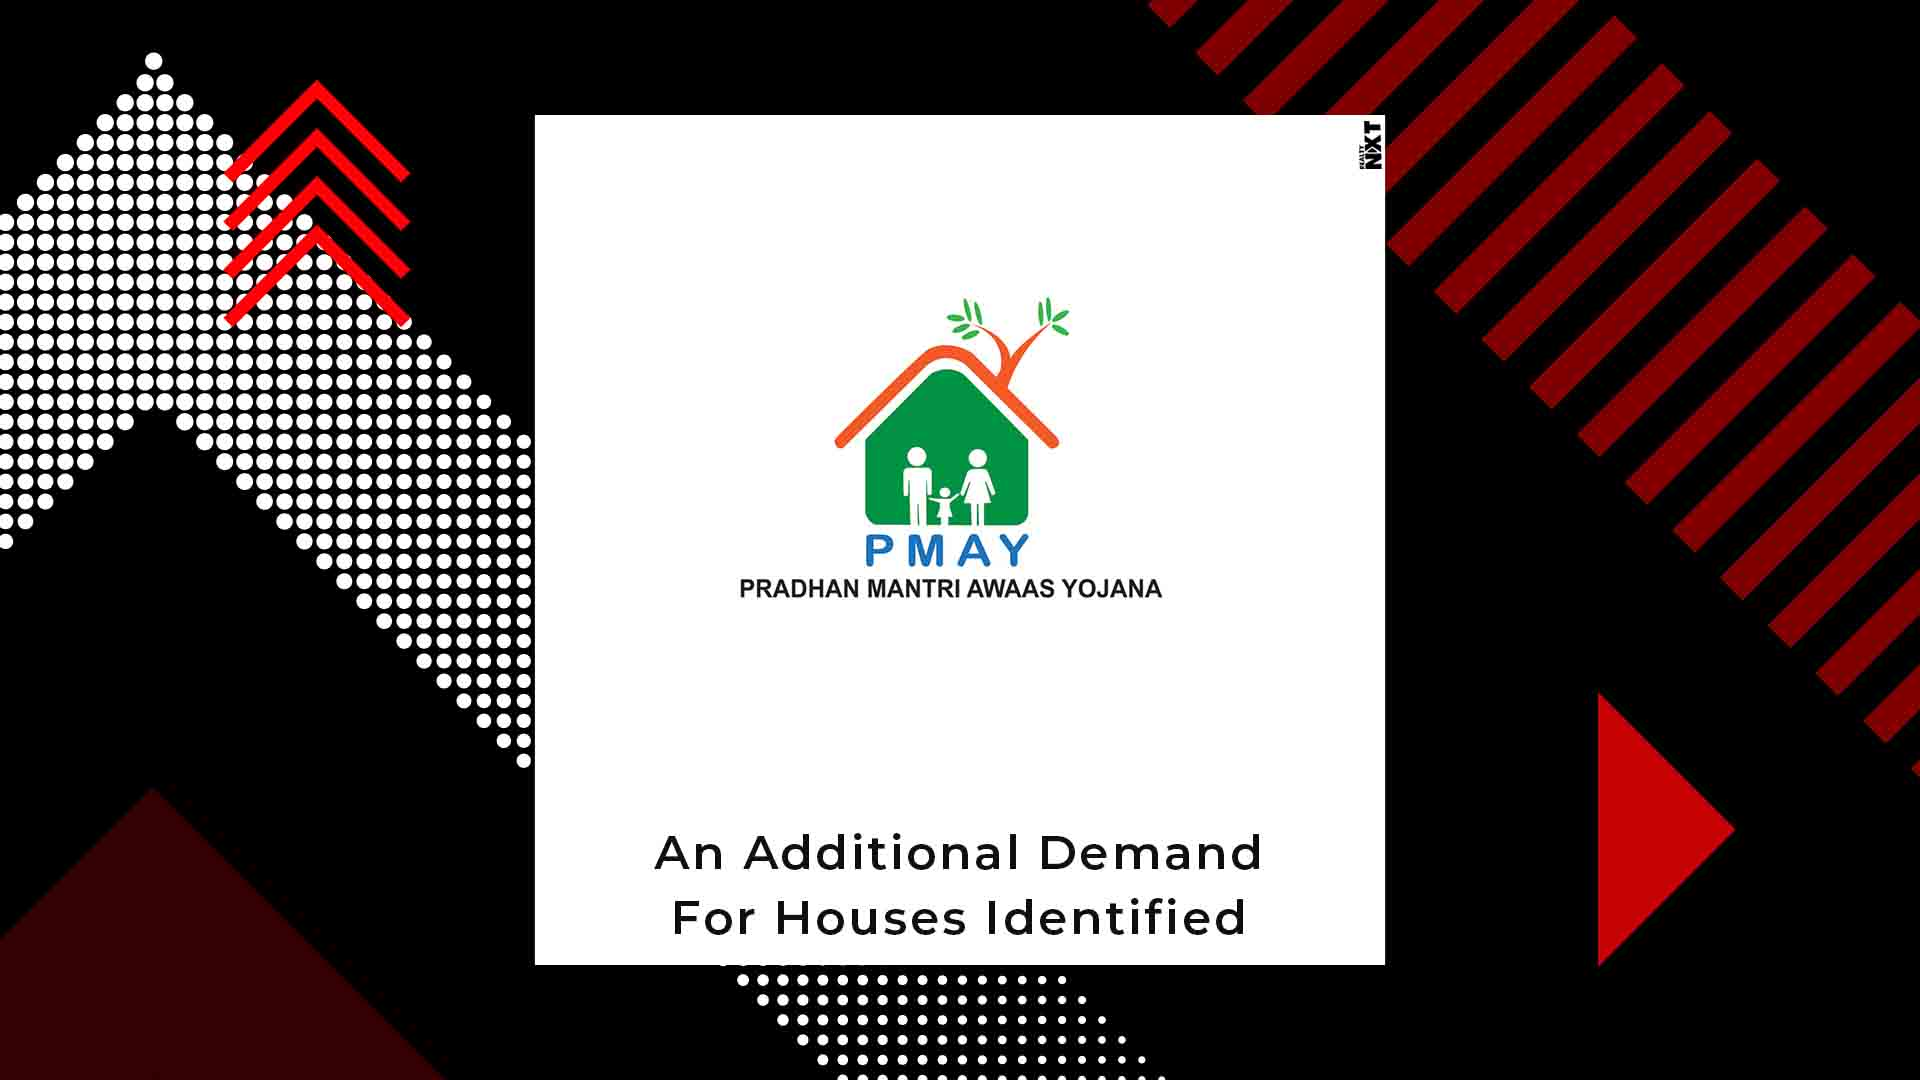 New Demand For Houses Identified Under The PMAY Scheme